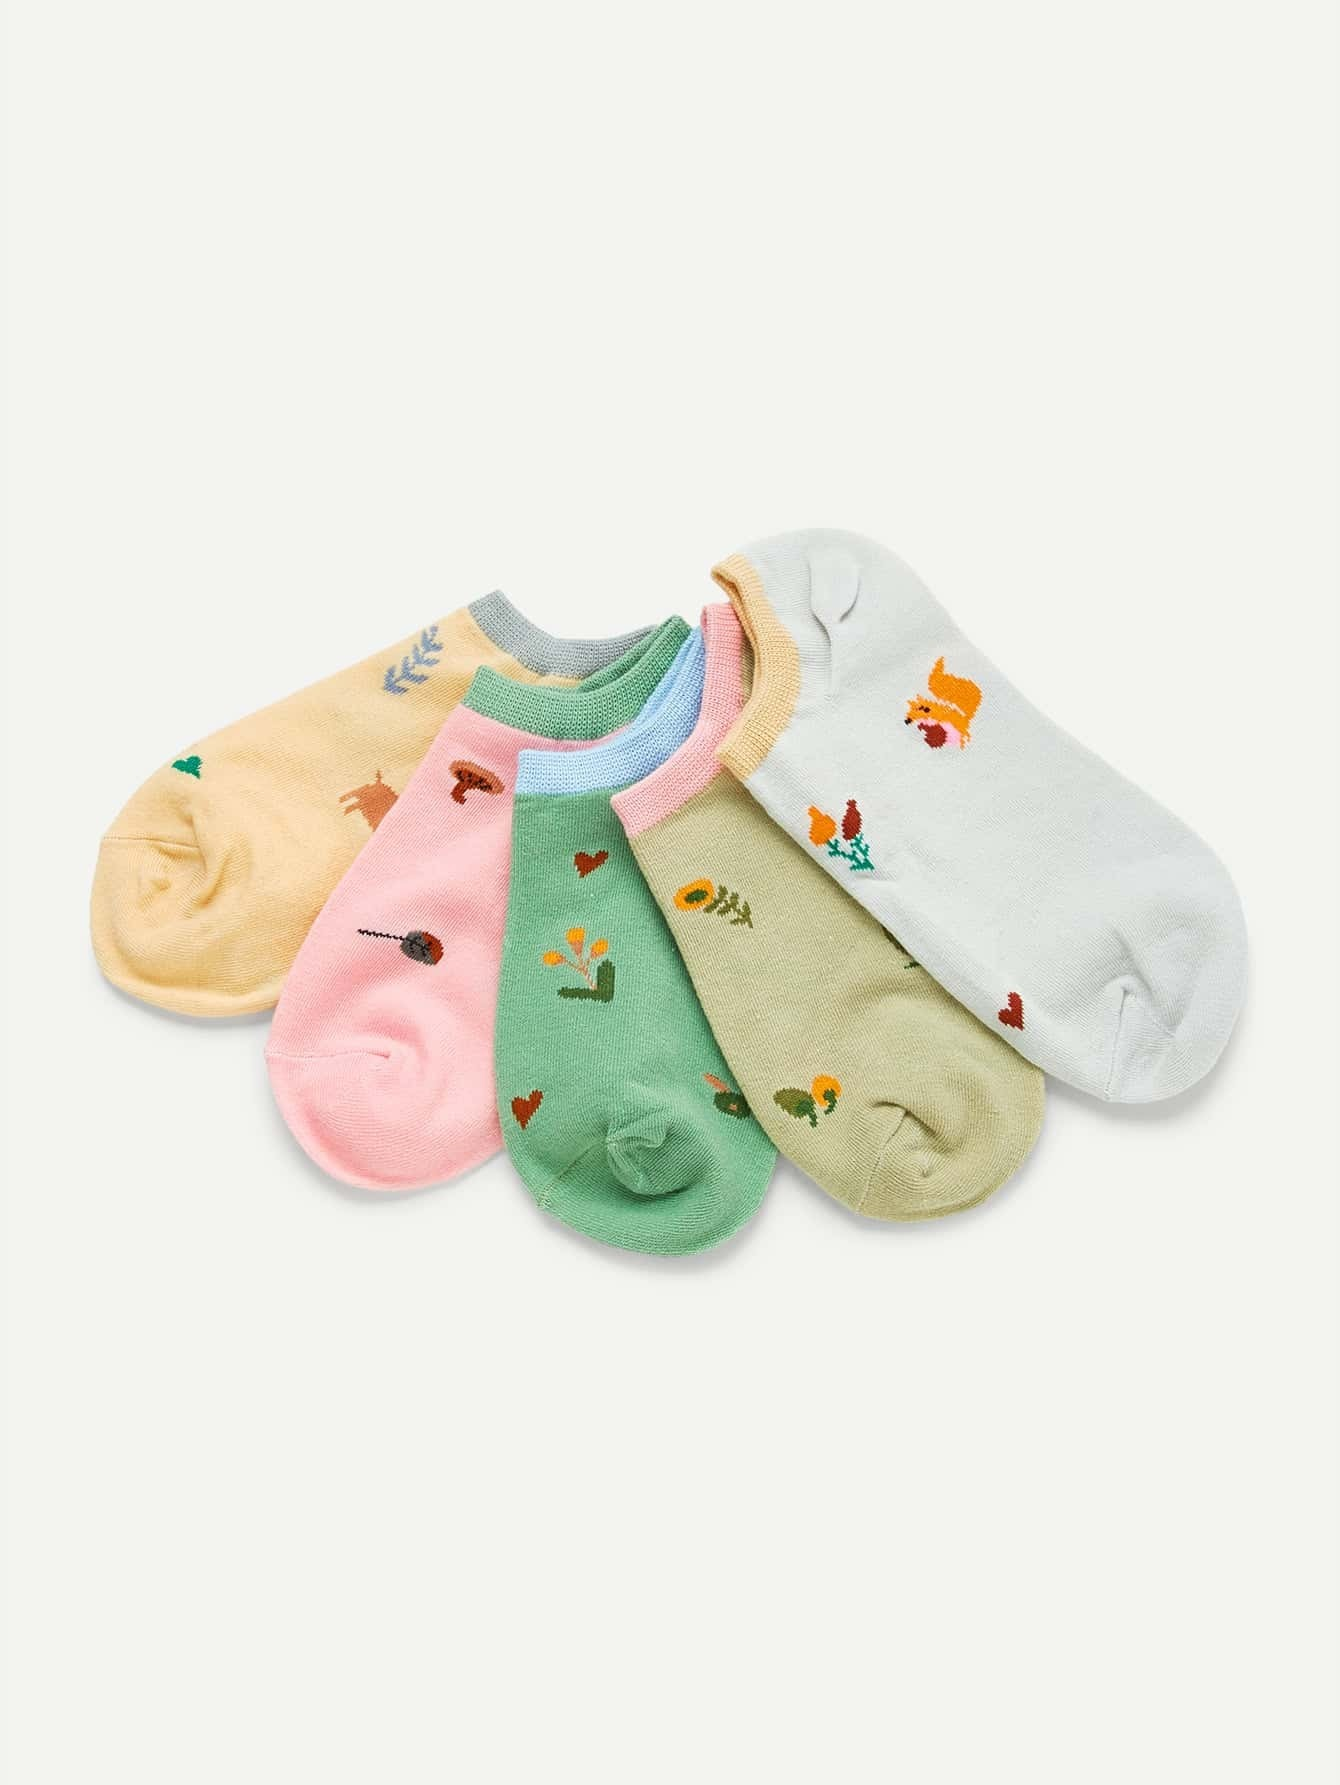 Calico Print Ankle socks 5pairs 3d panda baby one side print crazy ankle socks